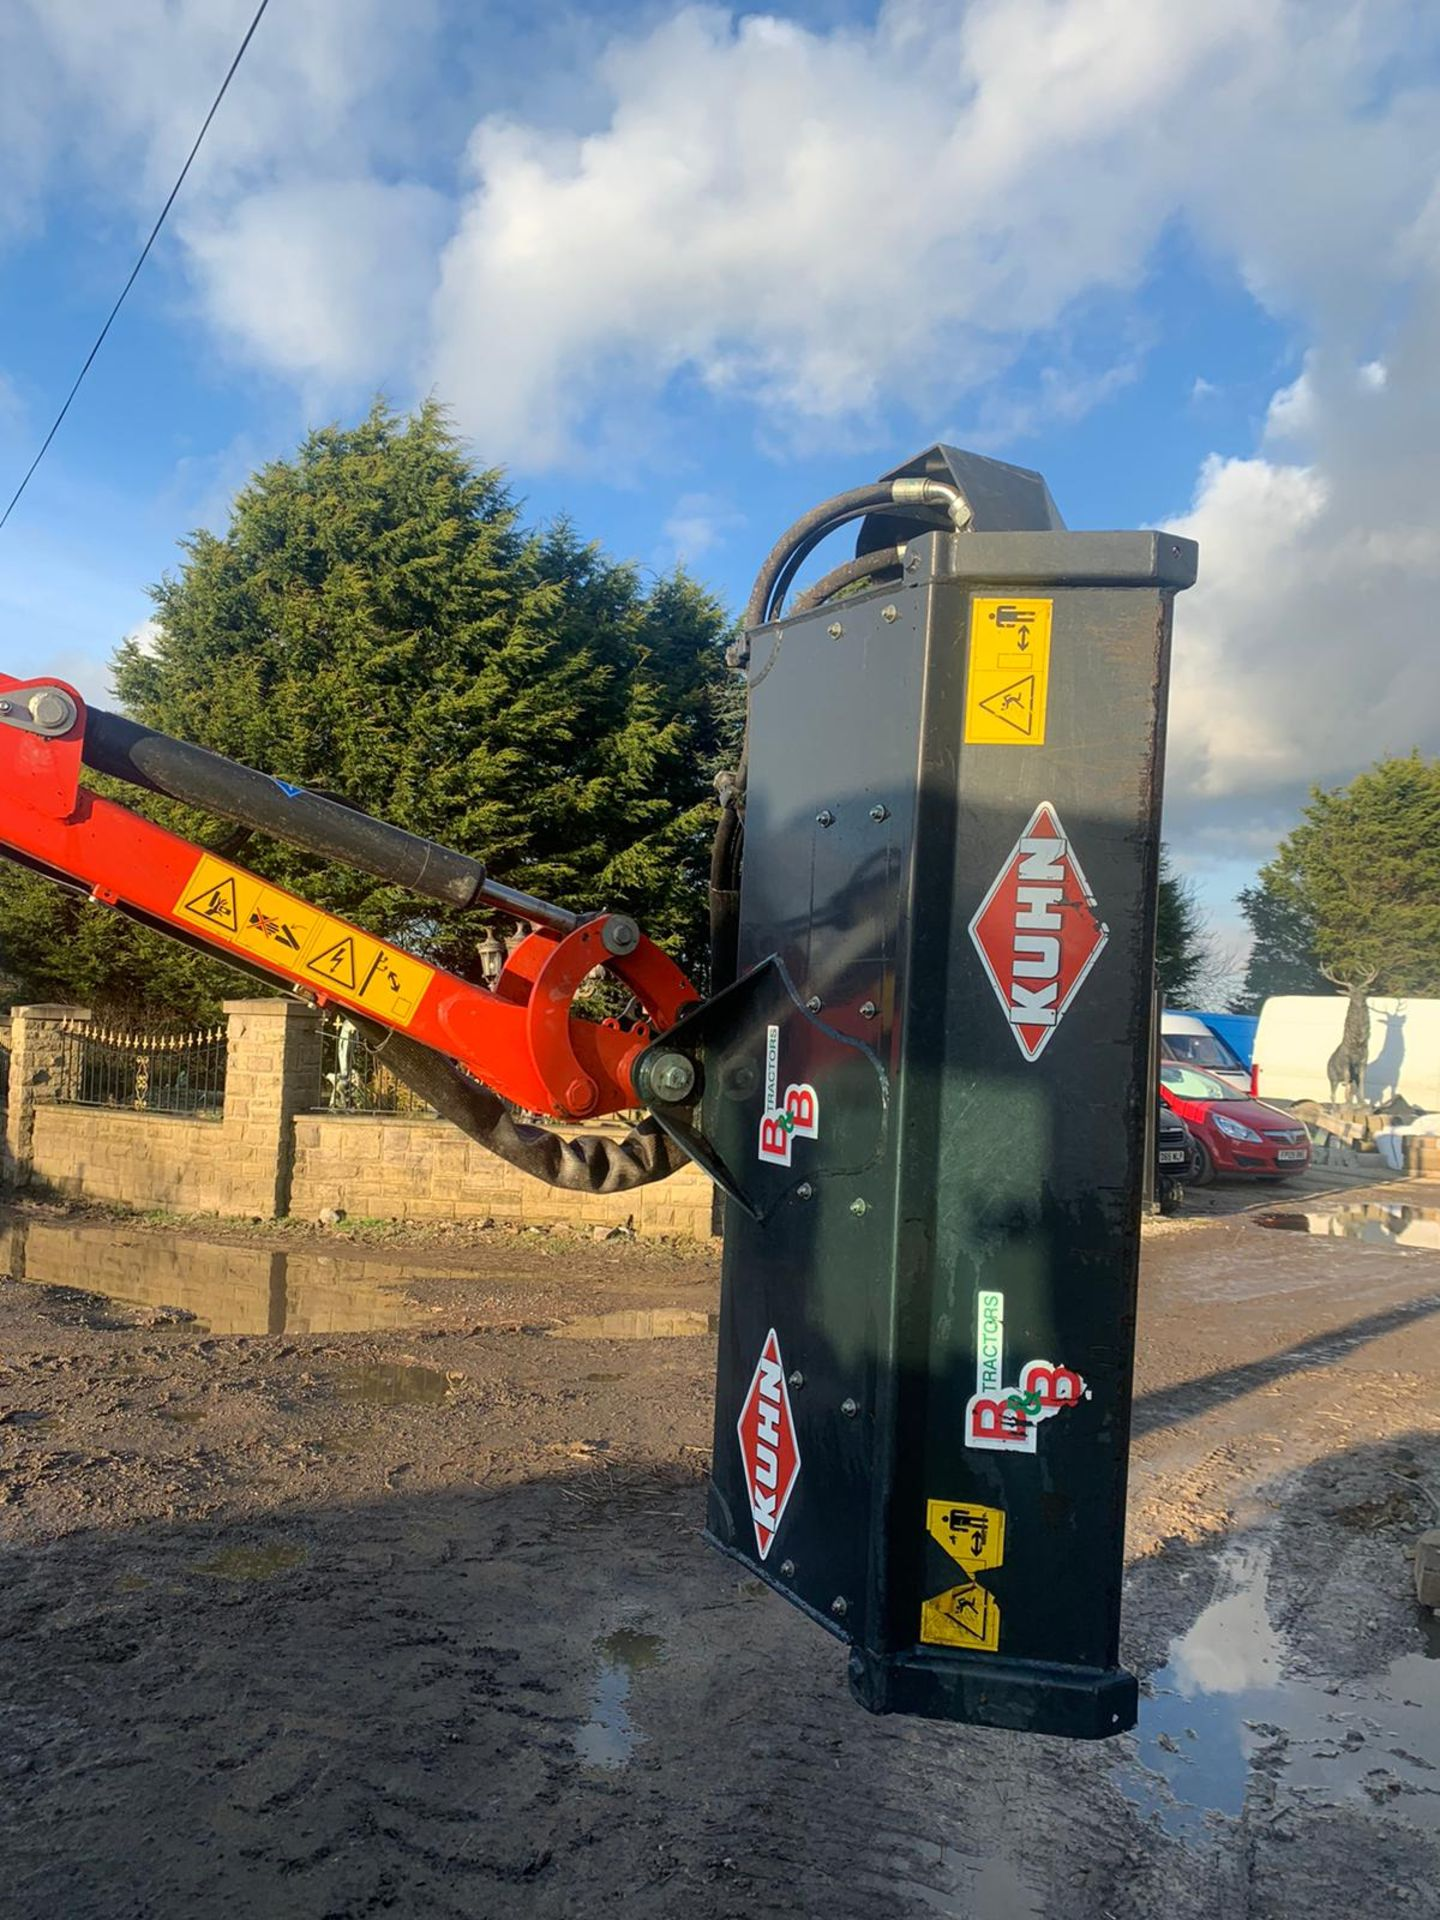 Lot 71 - KUHN AGRI-LONGER 4834 ML HEDGECUTTER, YEAR 2017, UNLADEN WEIGHT 875 KG, WORKS & CUTS *PLUS VAT*